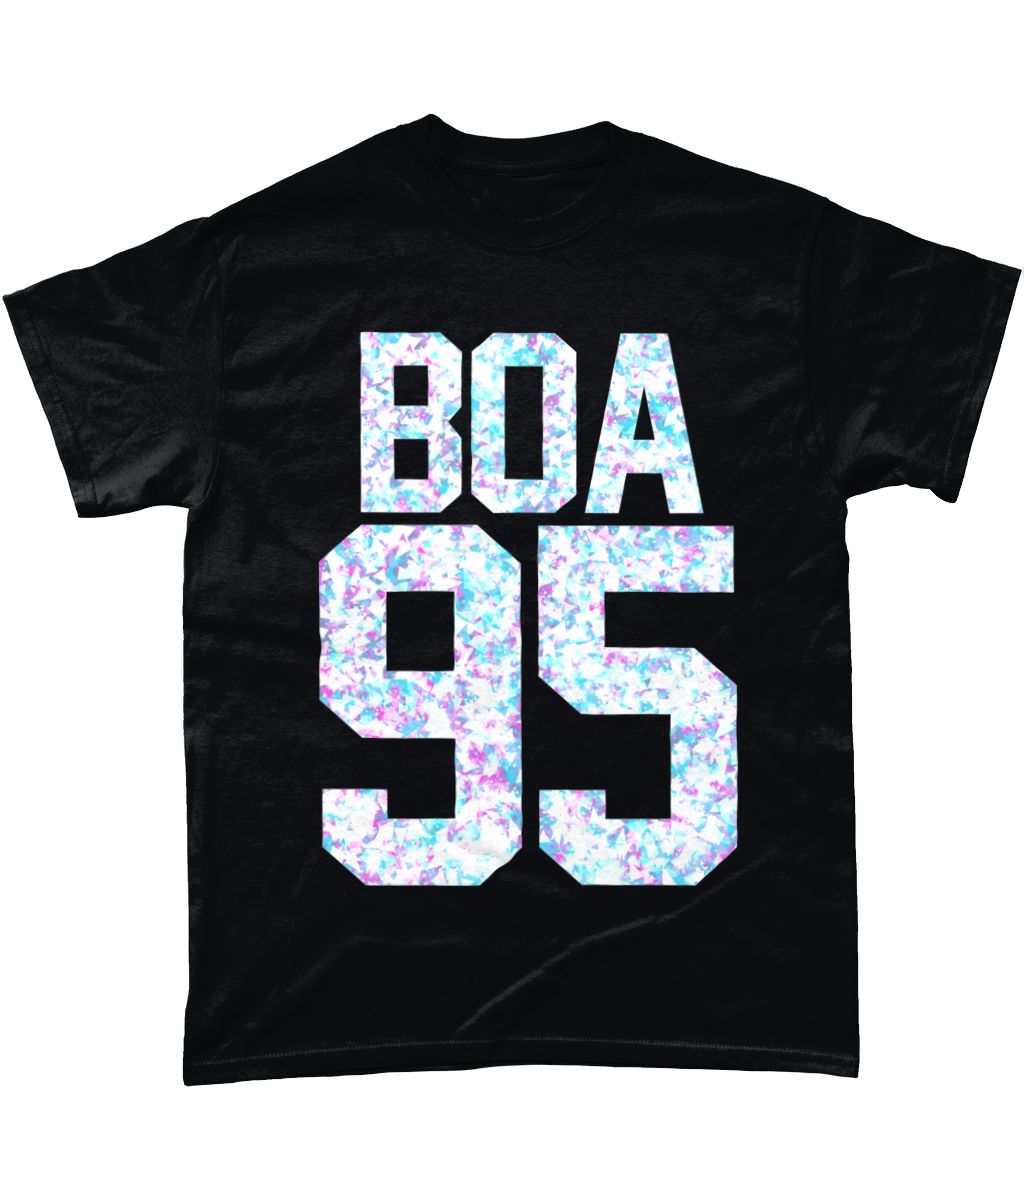 BOA - 95 T-shirt - SNATCHED MERCH